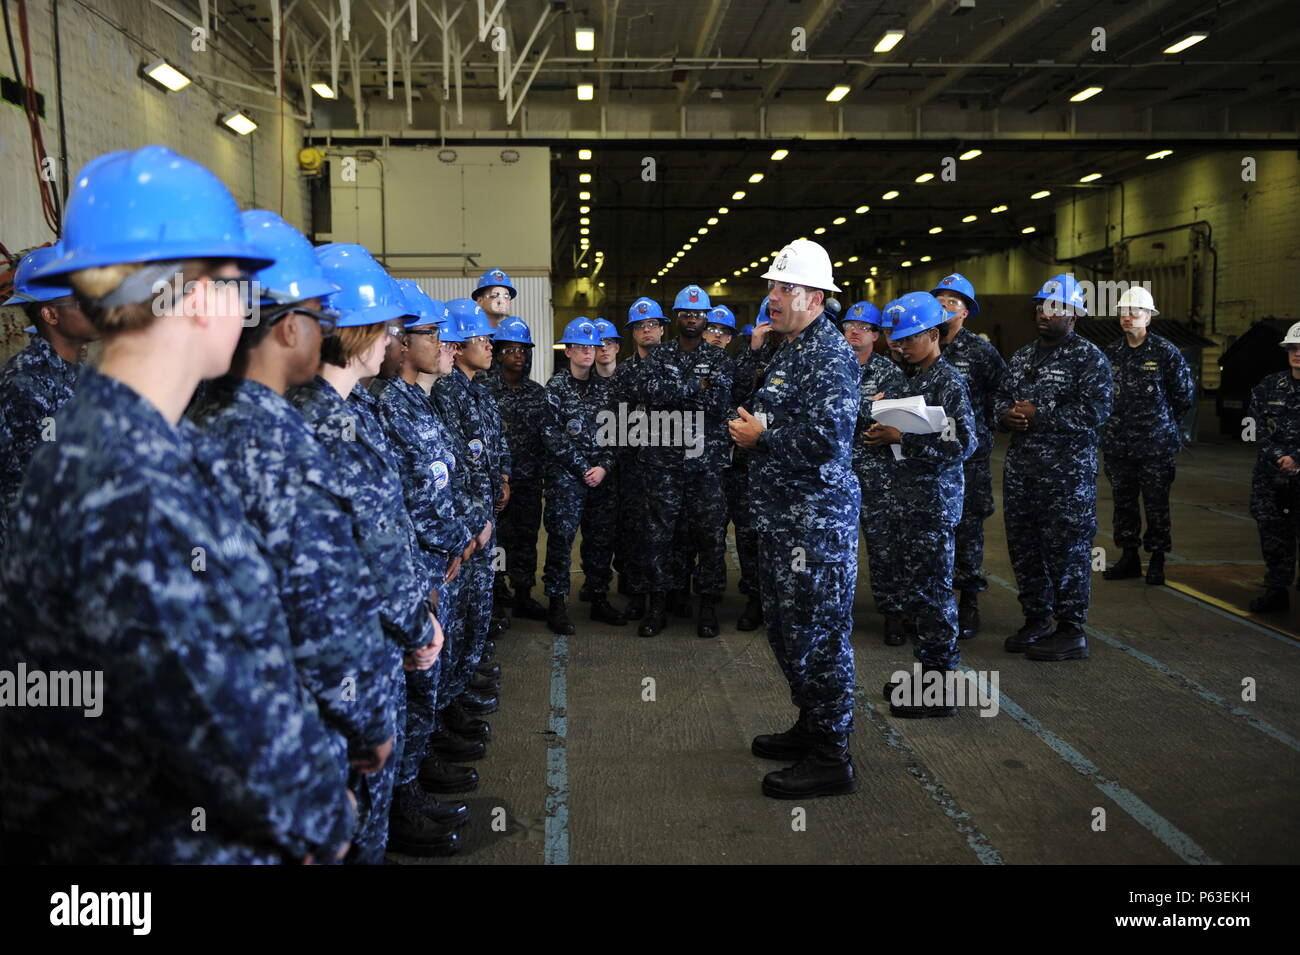 NEWPORT NEWS, Va. (Apr 19, 2016) -- Senior Chief Boatswain's Mate Edwin Bennett assigned to Pre-Commissioning Unit Gerald R. Ford (CVN 78) briefs sailors during departmental quarters in the ship's hangar bay. Ford is the first of a new class of aircraft carriers currently under construction by Huntington Ingalls industries Newport News Shipbuilding. (U.S. Navy photo by Mass Communication Specialist Seaman Apprentice Connor Loessin/Released) - Stock Image